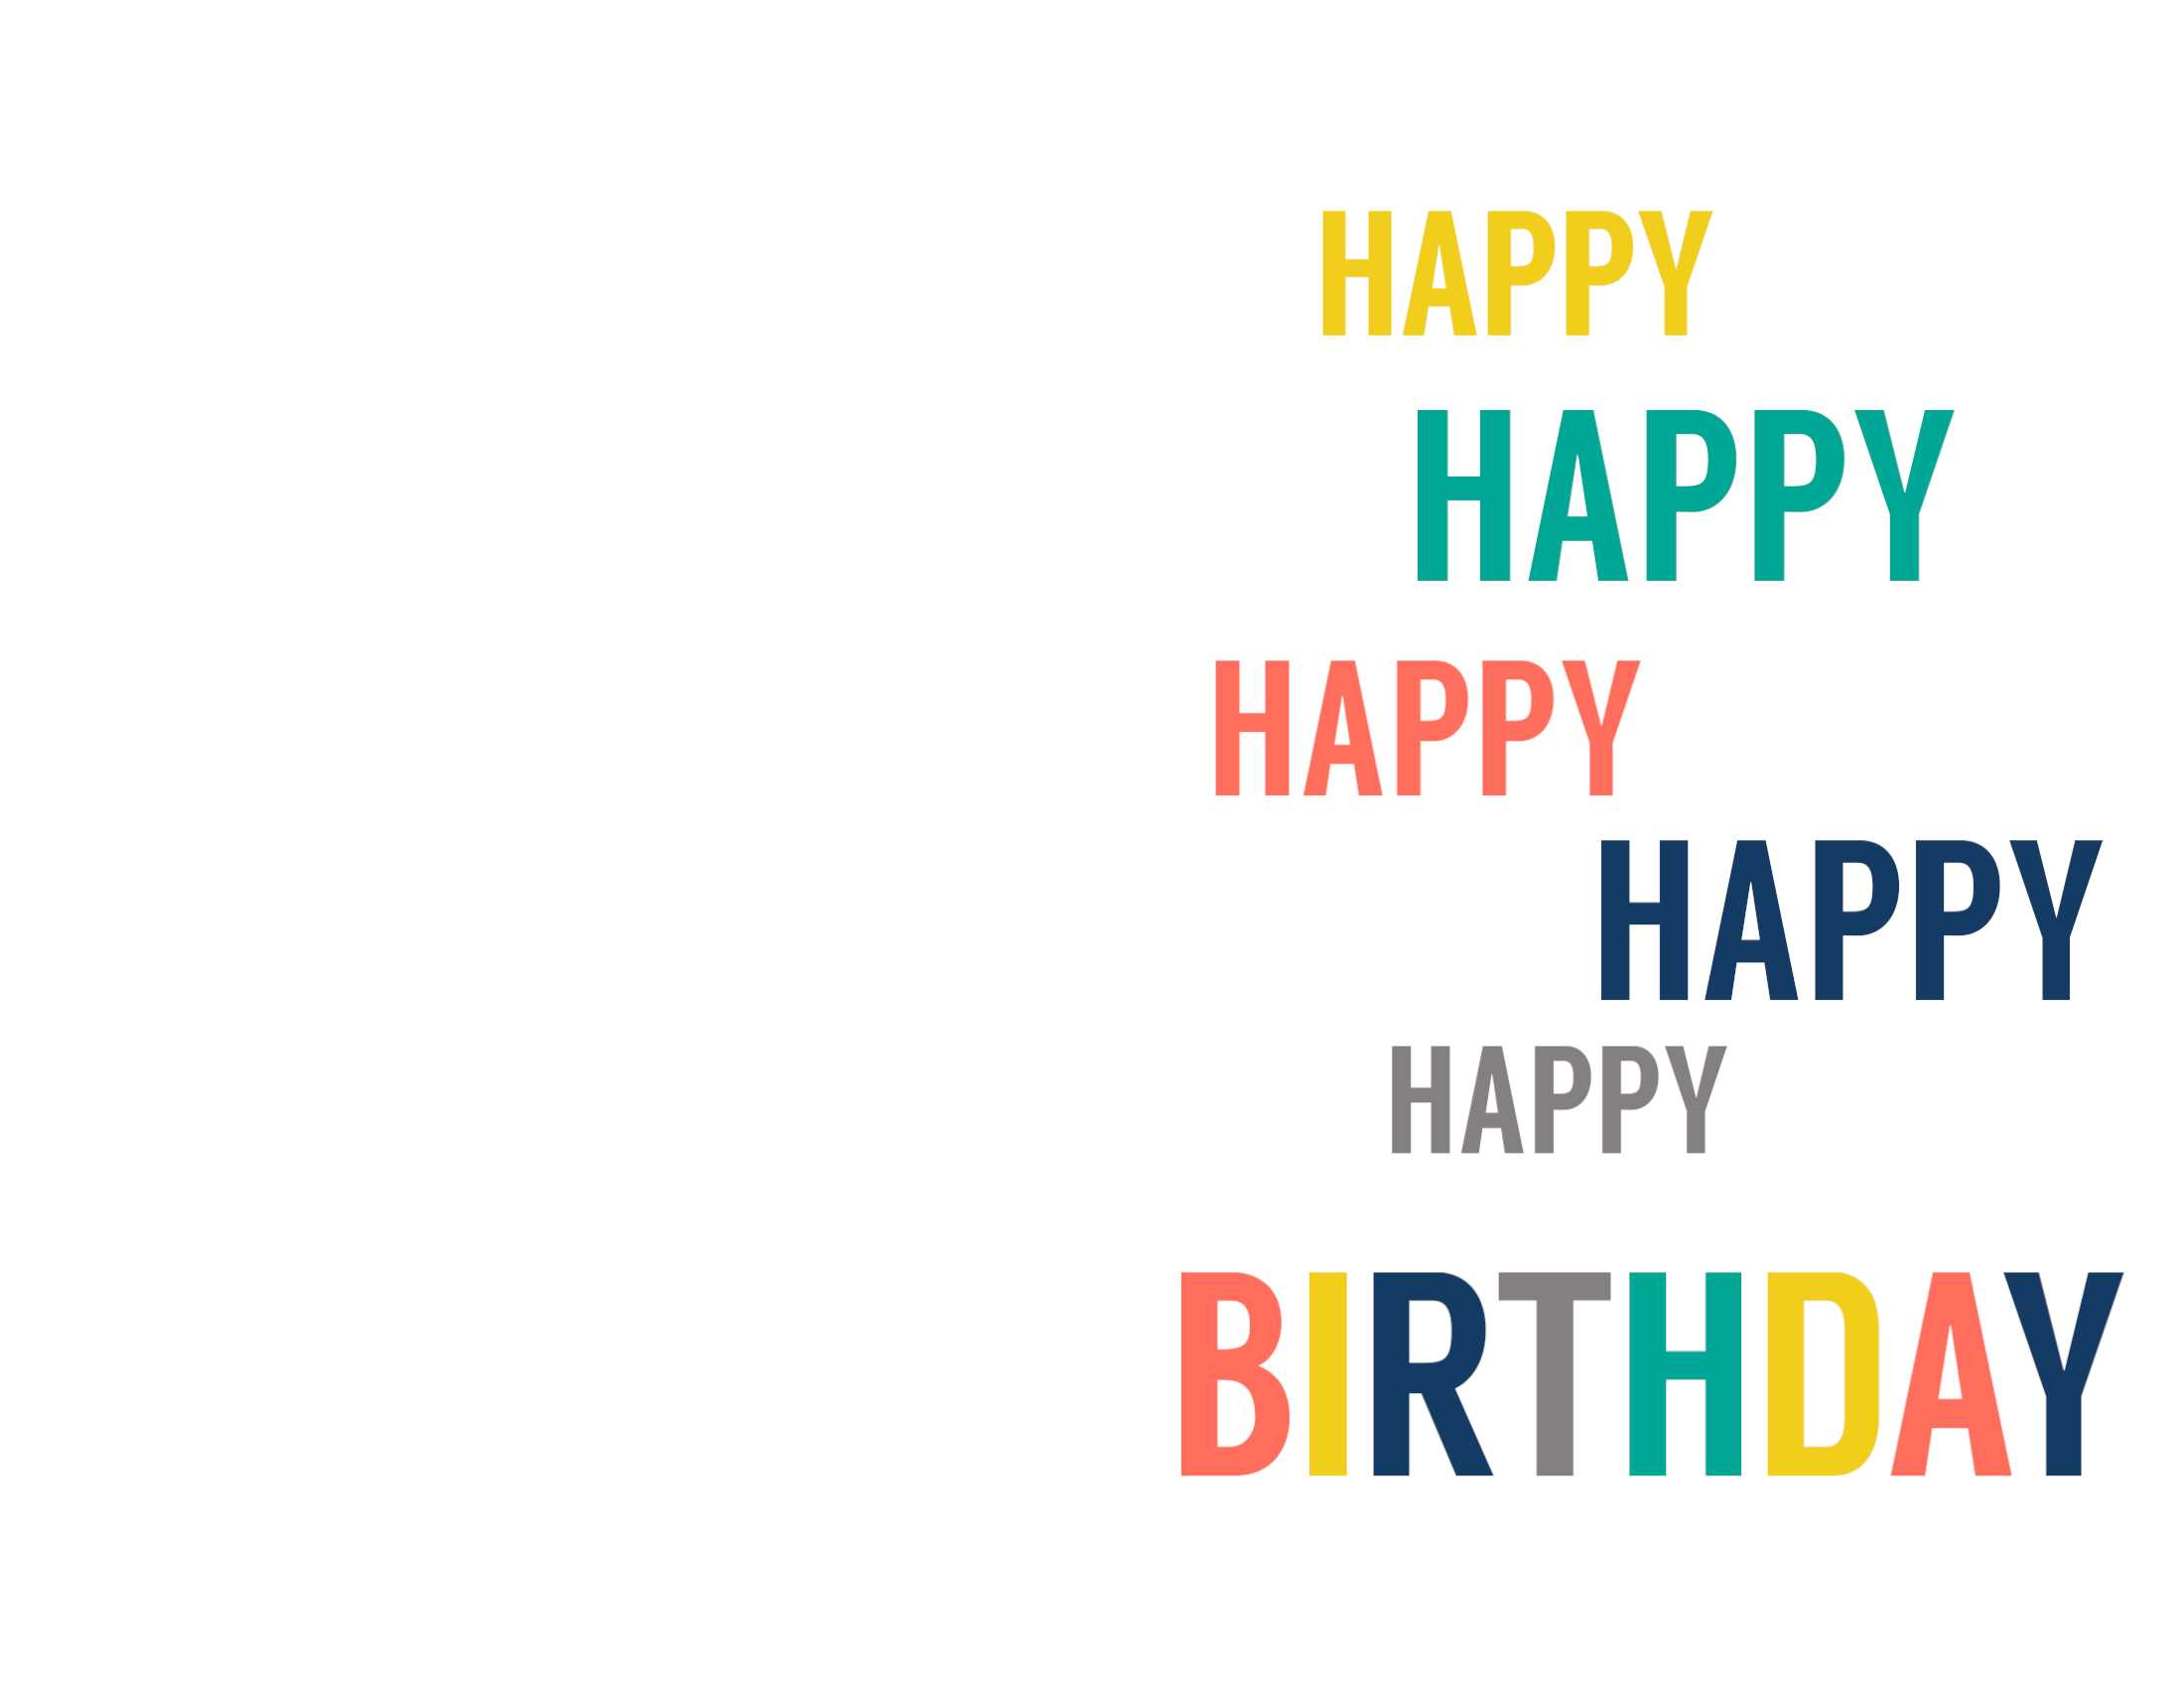 Free Printable Birthday Cards - Paper Trail Design Inside Foldable Birthday Card Template